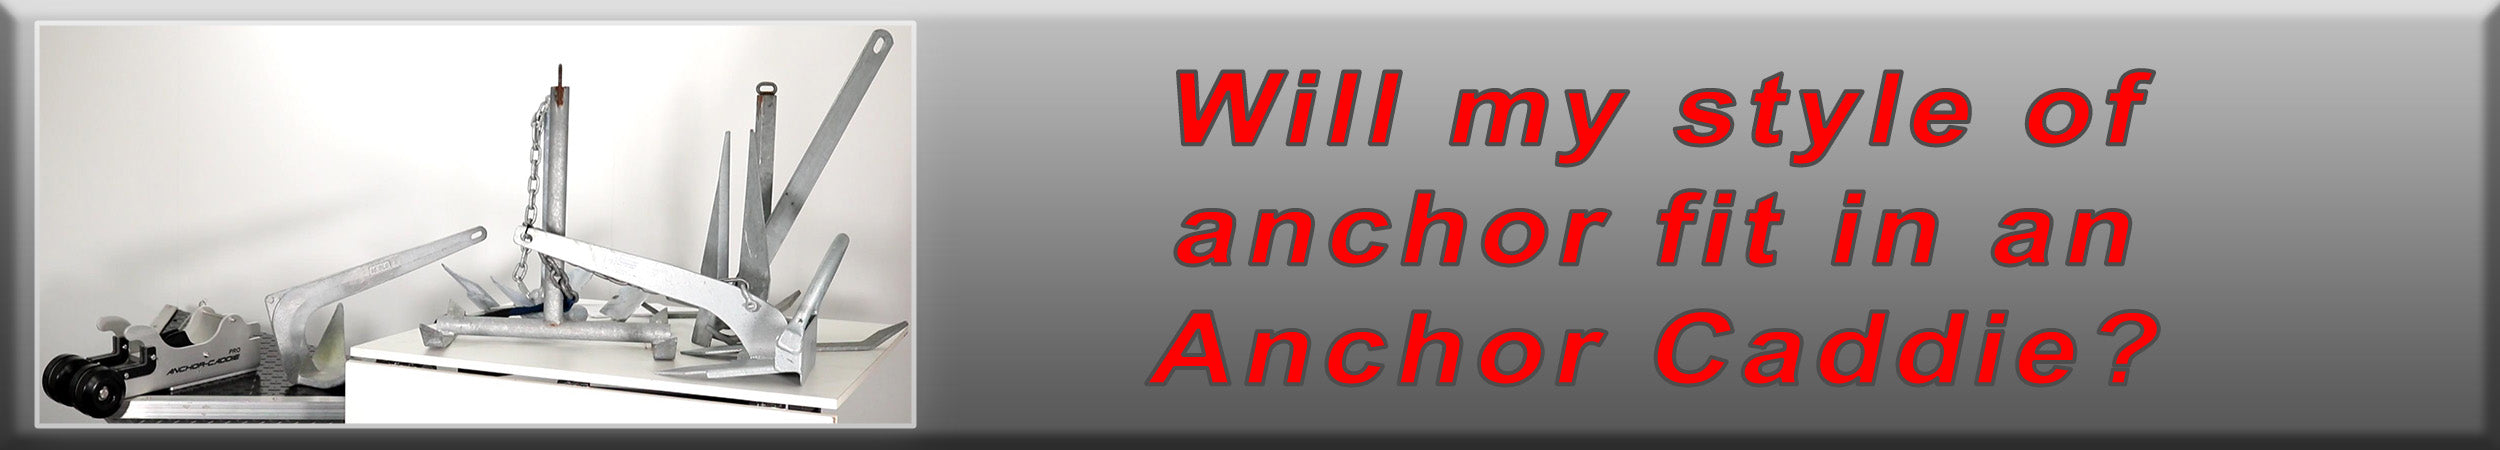 Will my anchor fit in an Anchor Caddie Anchor Nest?